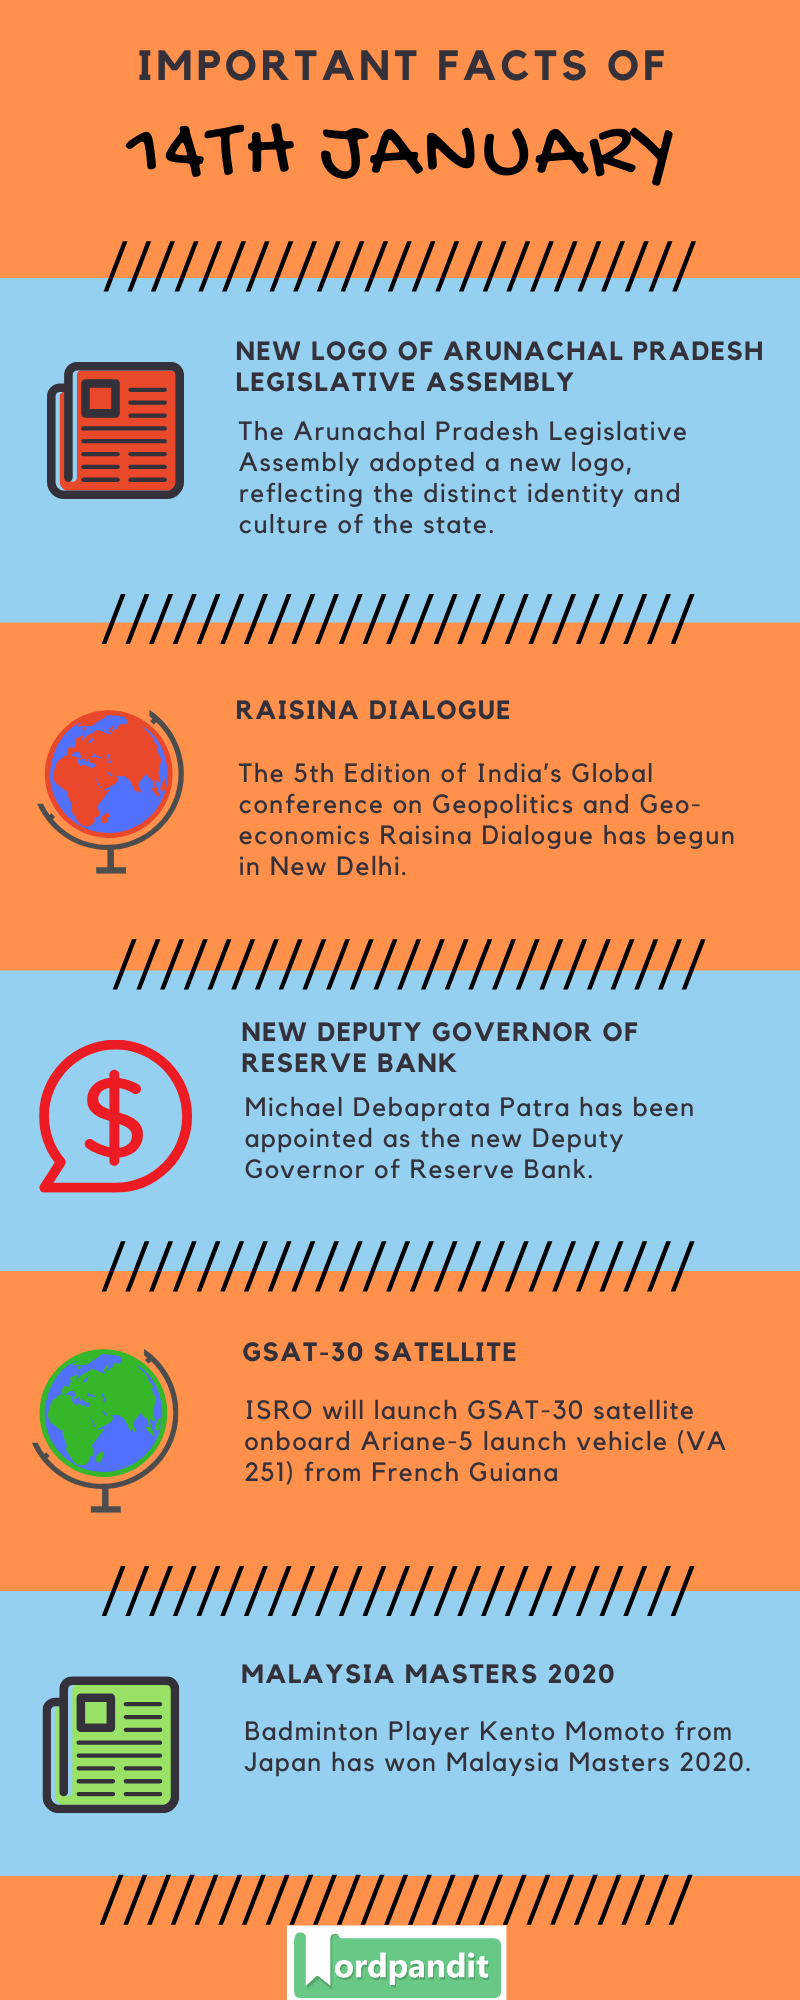 Daily Current Affairs 14 January 2020 Current Affairs Quiz 14 January 2020 Current Affairs Infographic